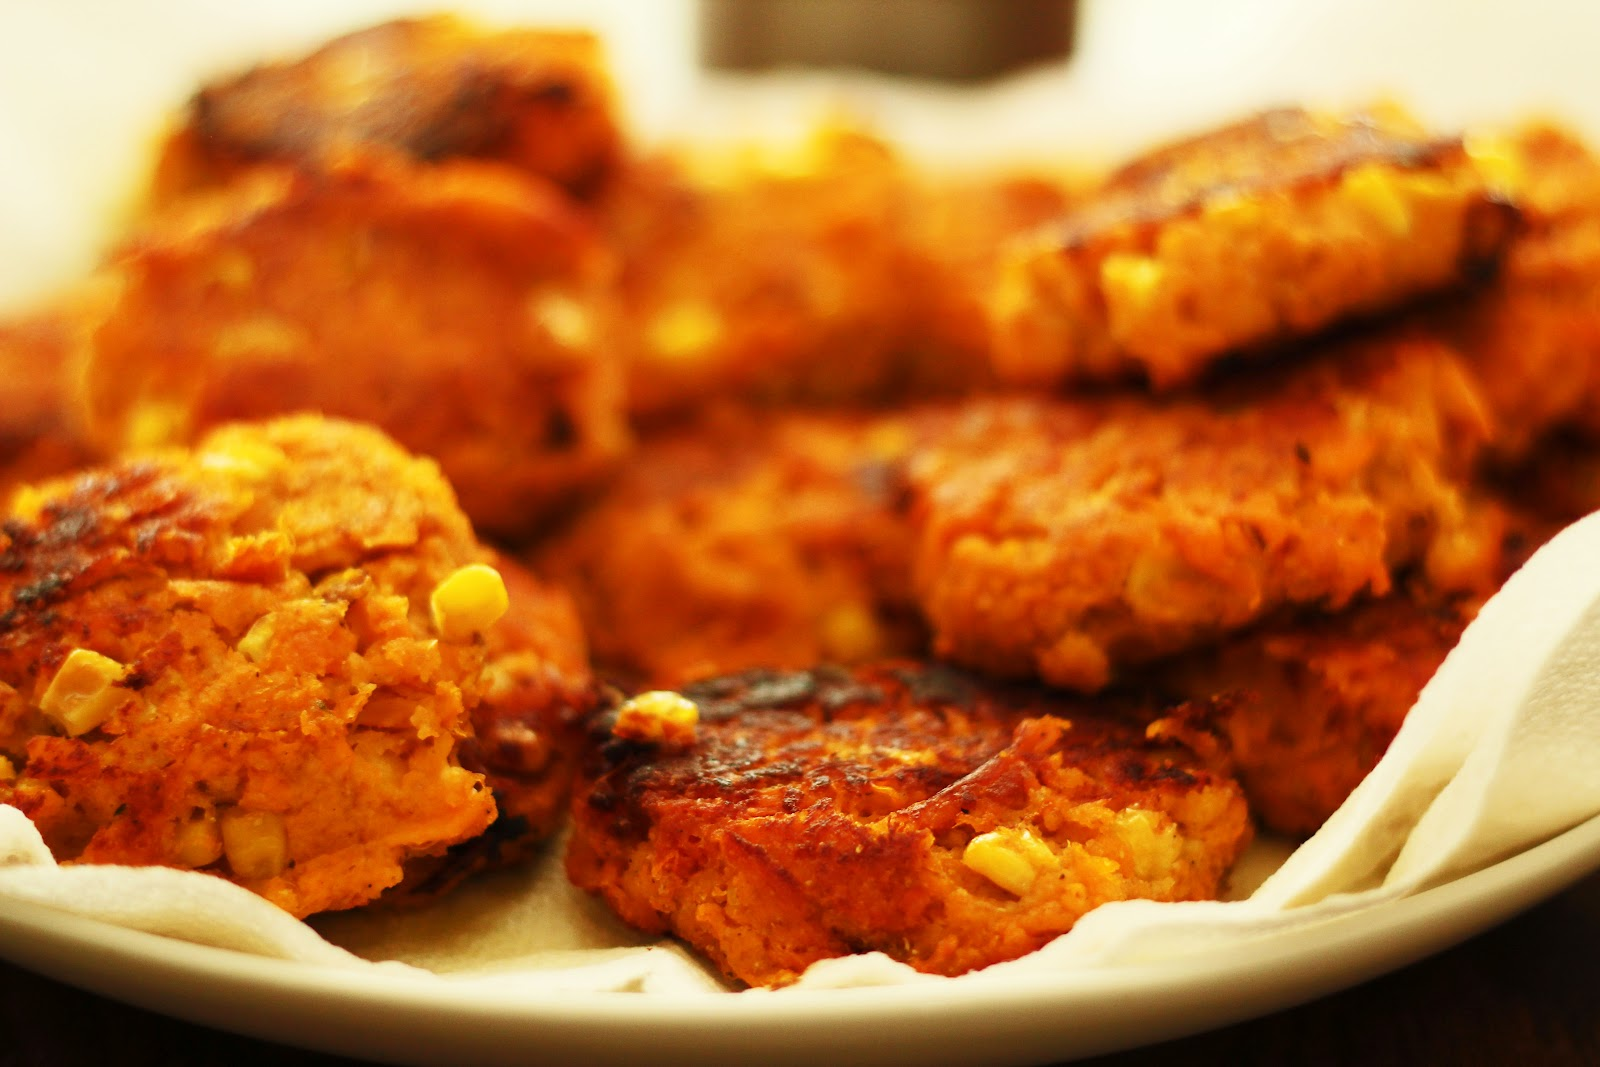 Emry at Home: Sweet Potato Corn Cakes